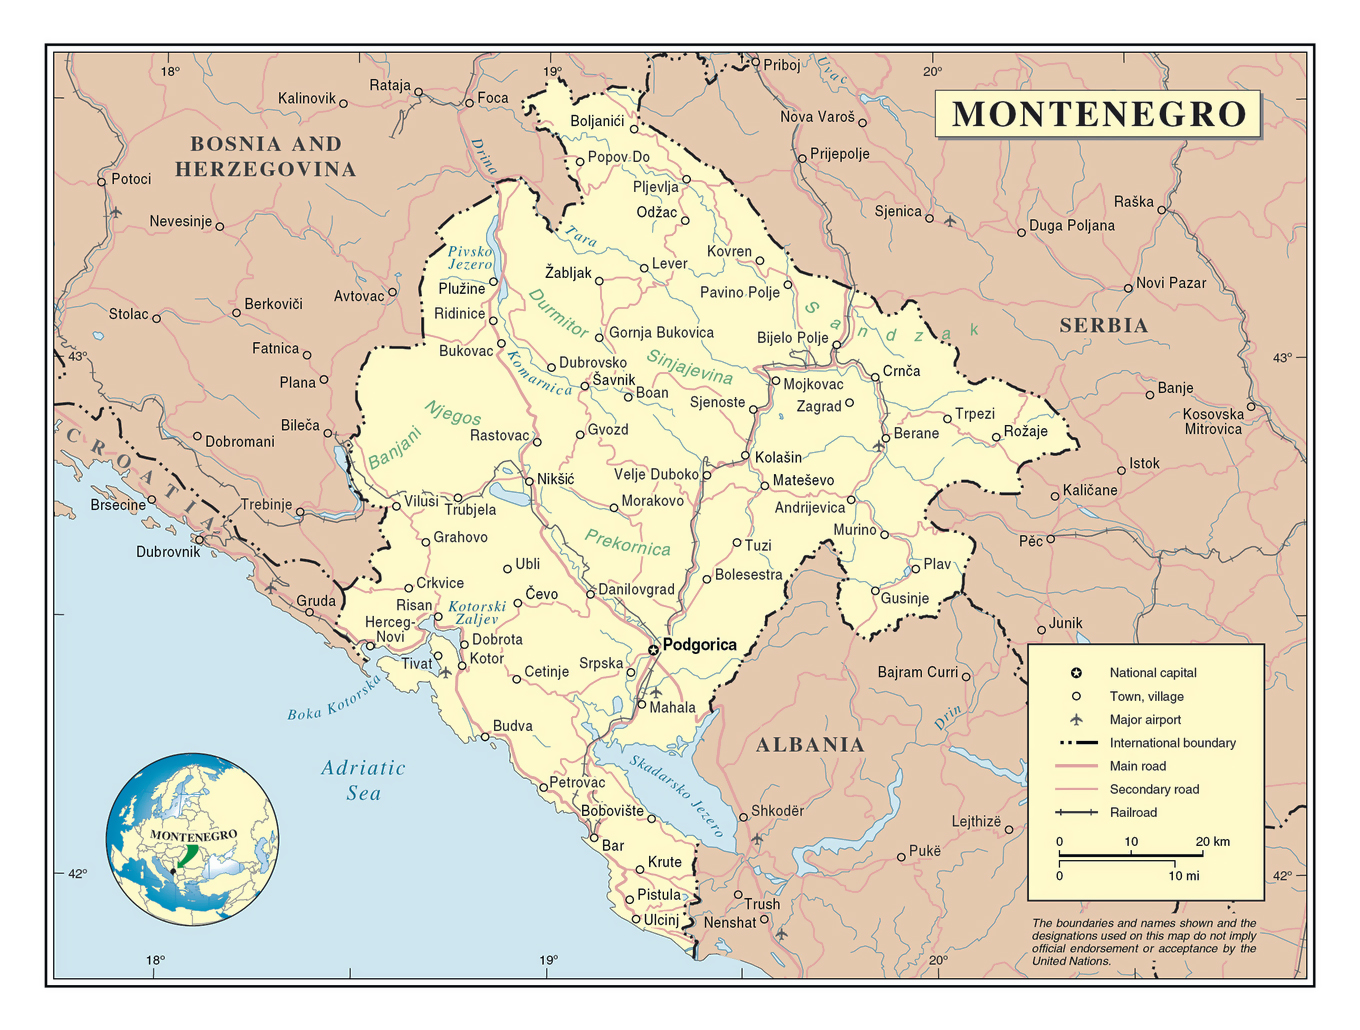 Montenegro On Europe Map.Detailed Political Map Of Montenegro With Roads Cities And Airports